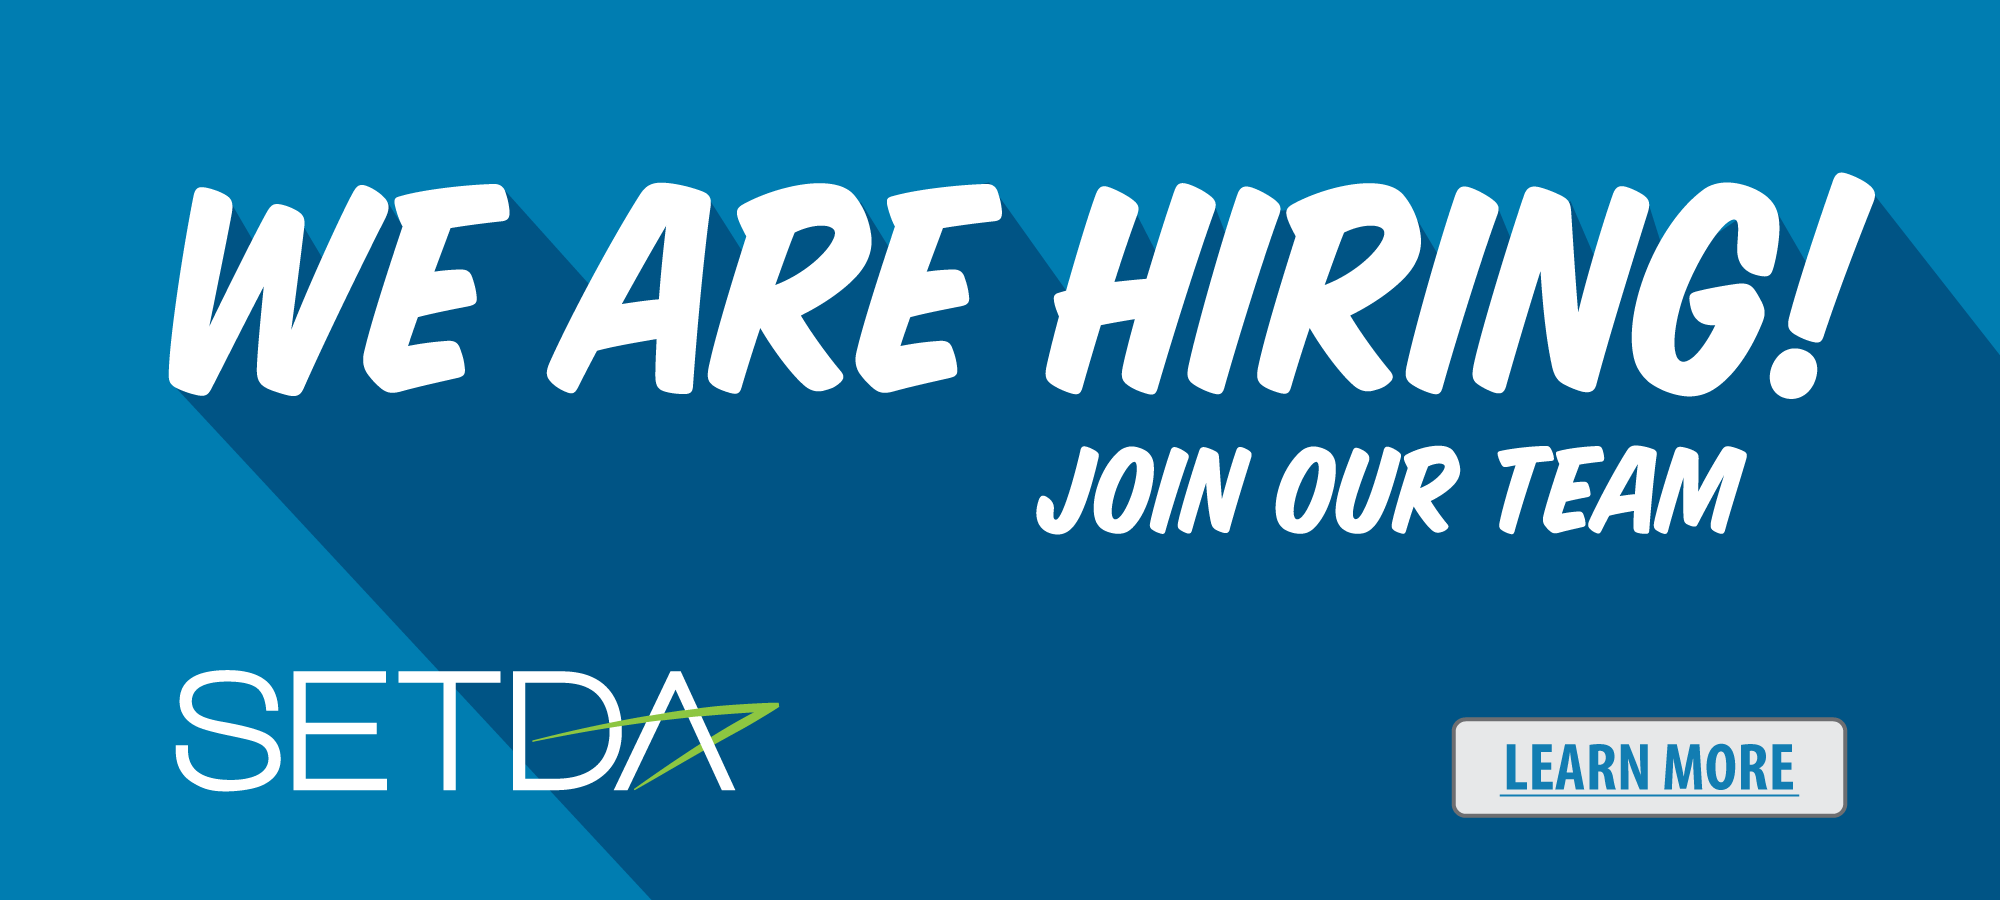 We Are Hiring - SETDA - Learn More